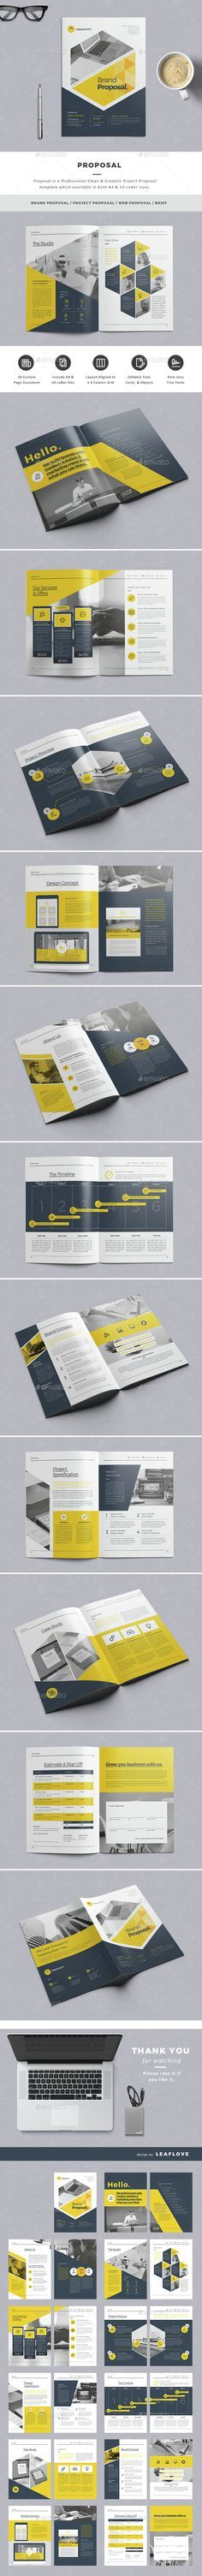 35 best Print images on Pinterest Invoice template, Proposal - web design proposal template